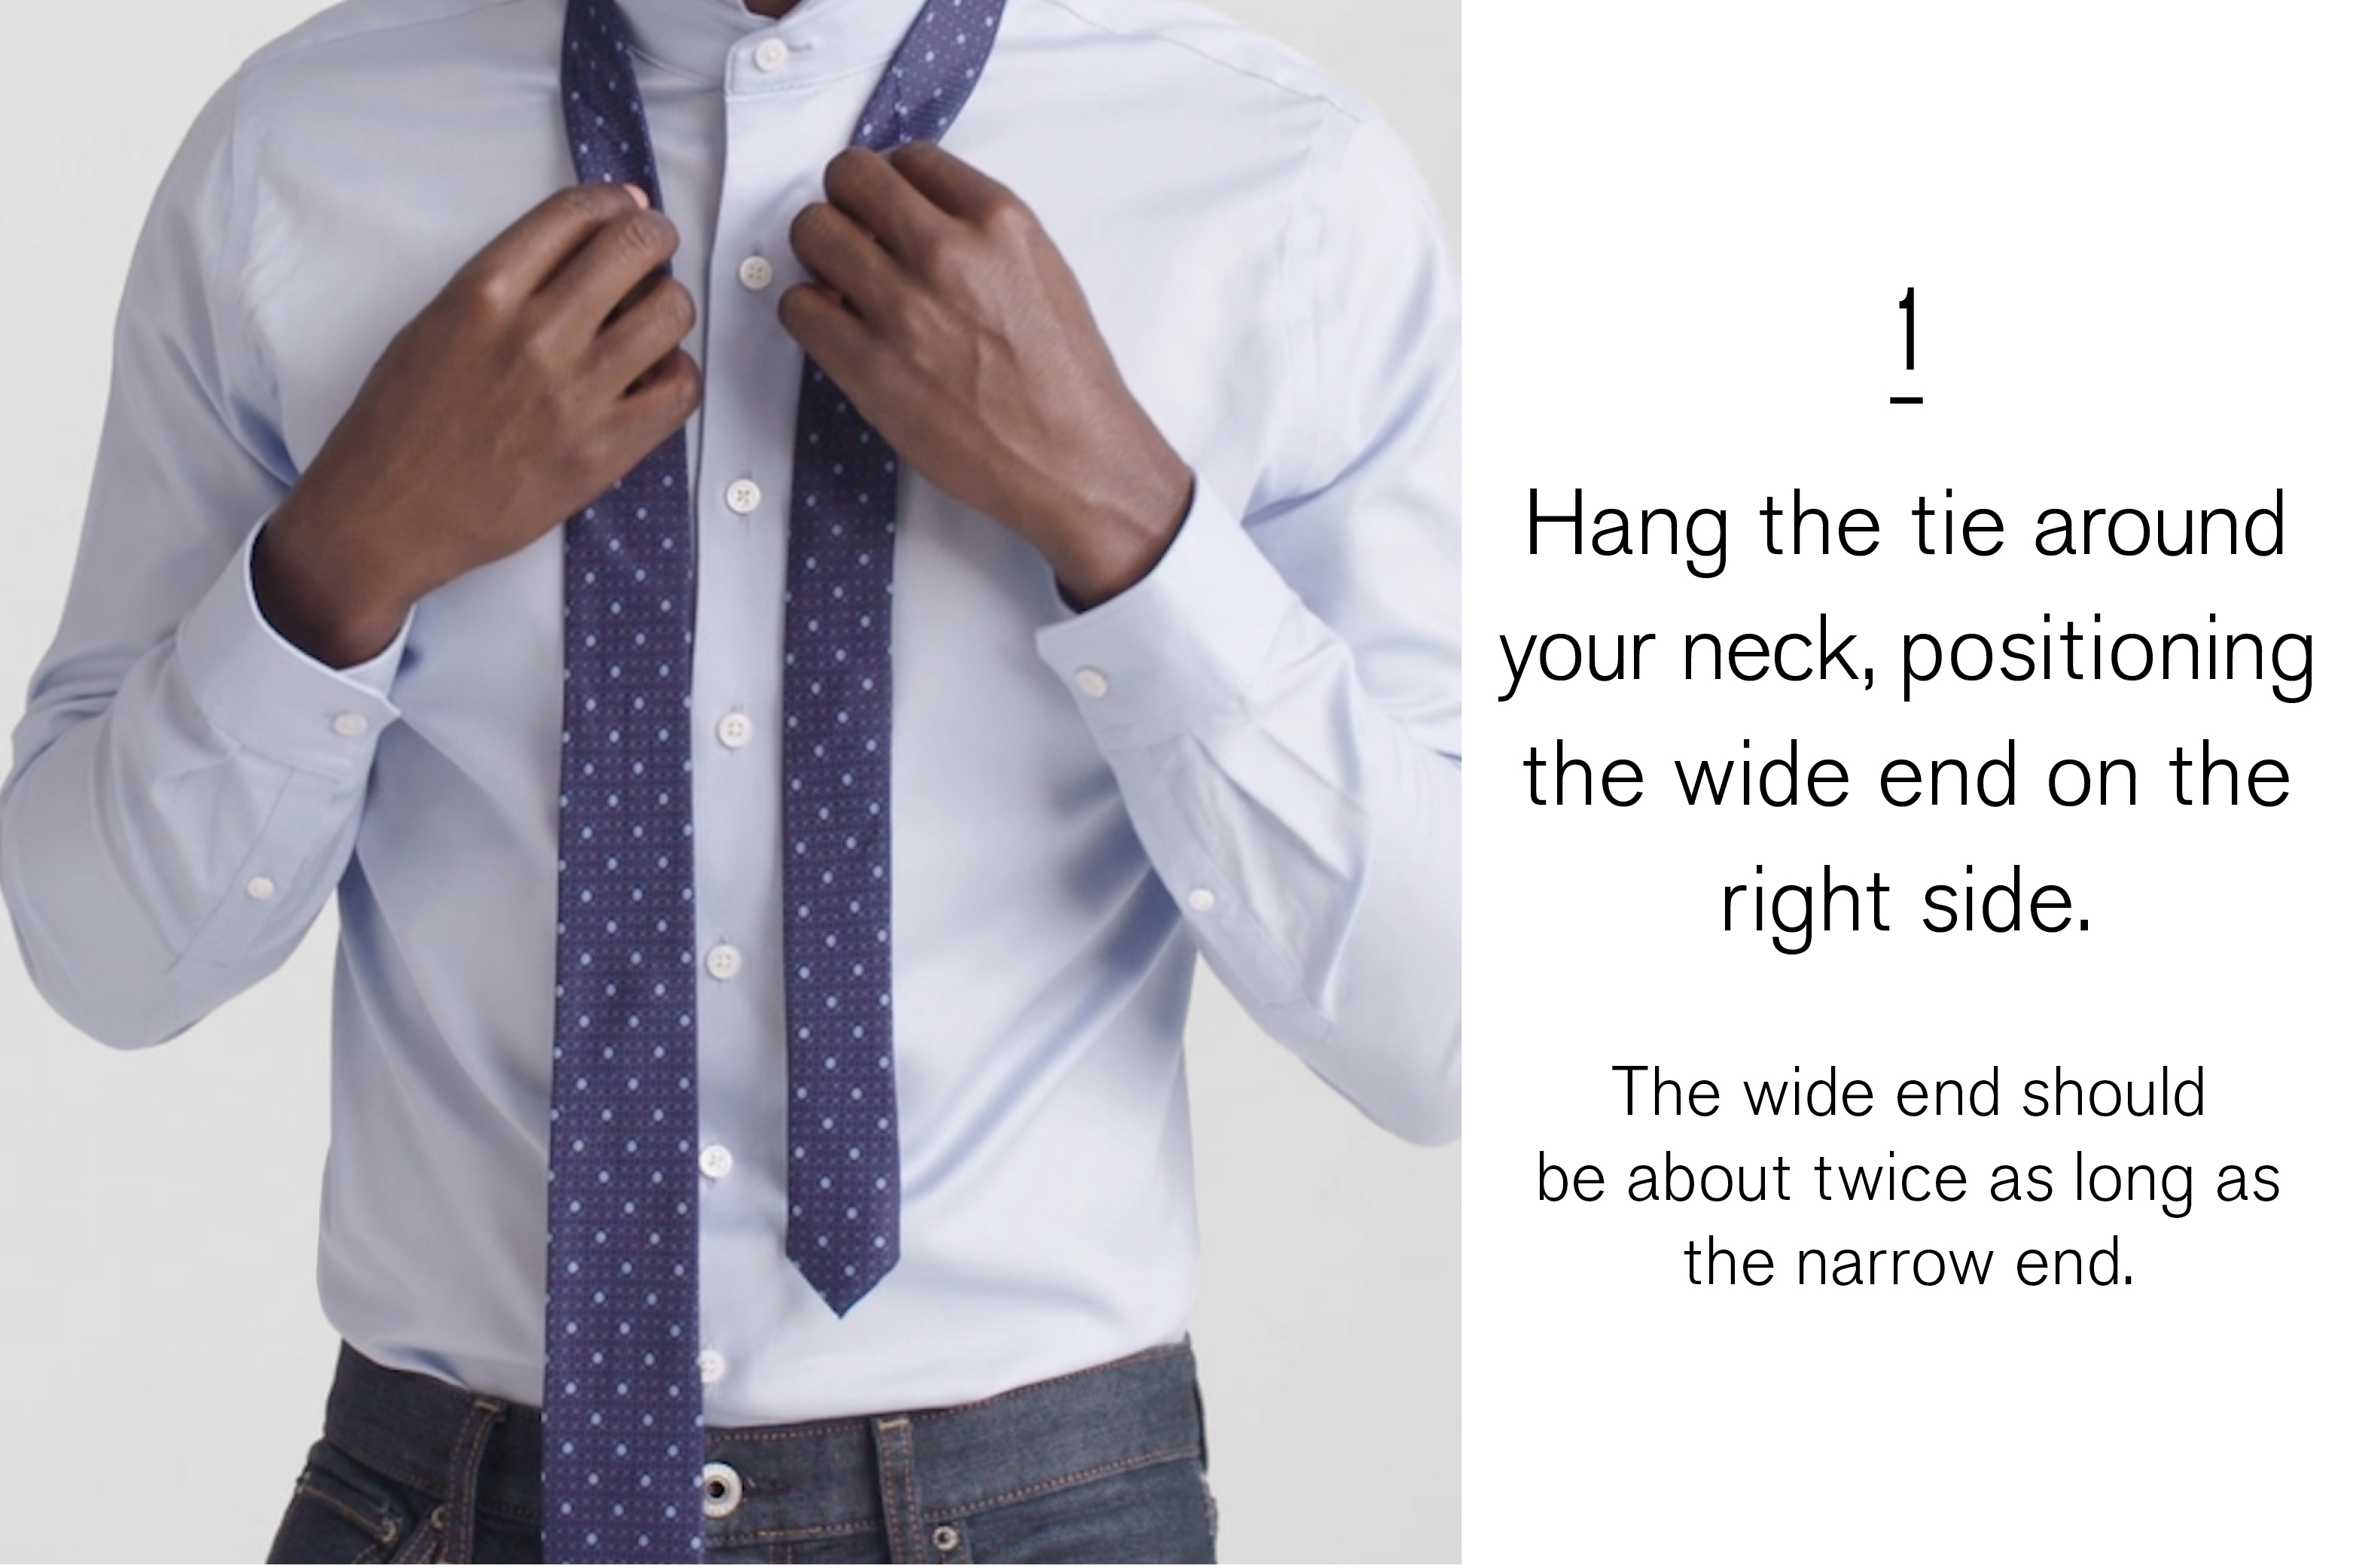 hang-the-tie-around-your-neck-positioning-the-wide-end-on-the-right-side-the-wide-end-should-be-twice-as-long-as-the-narrow-end